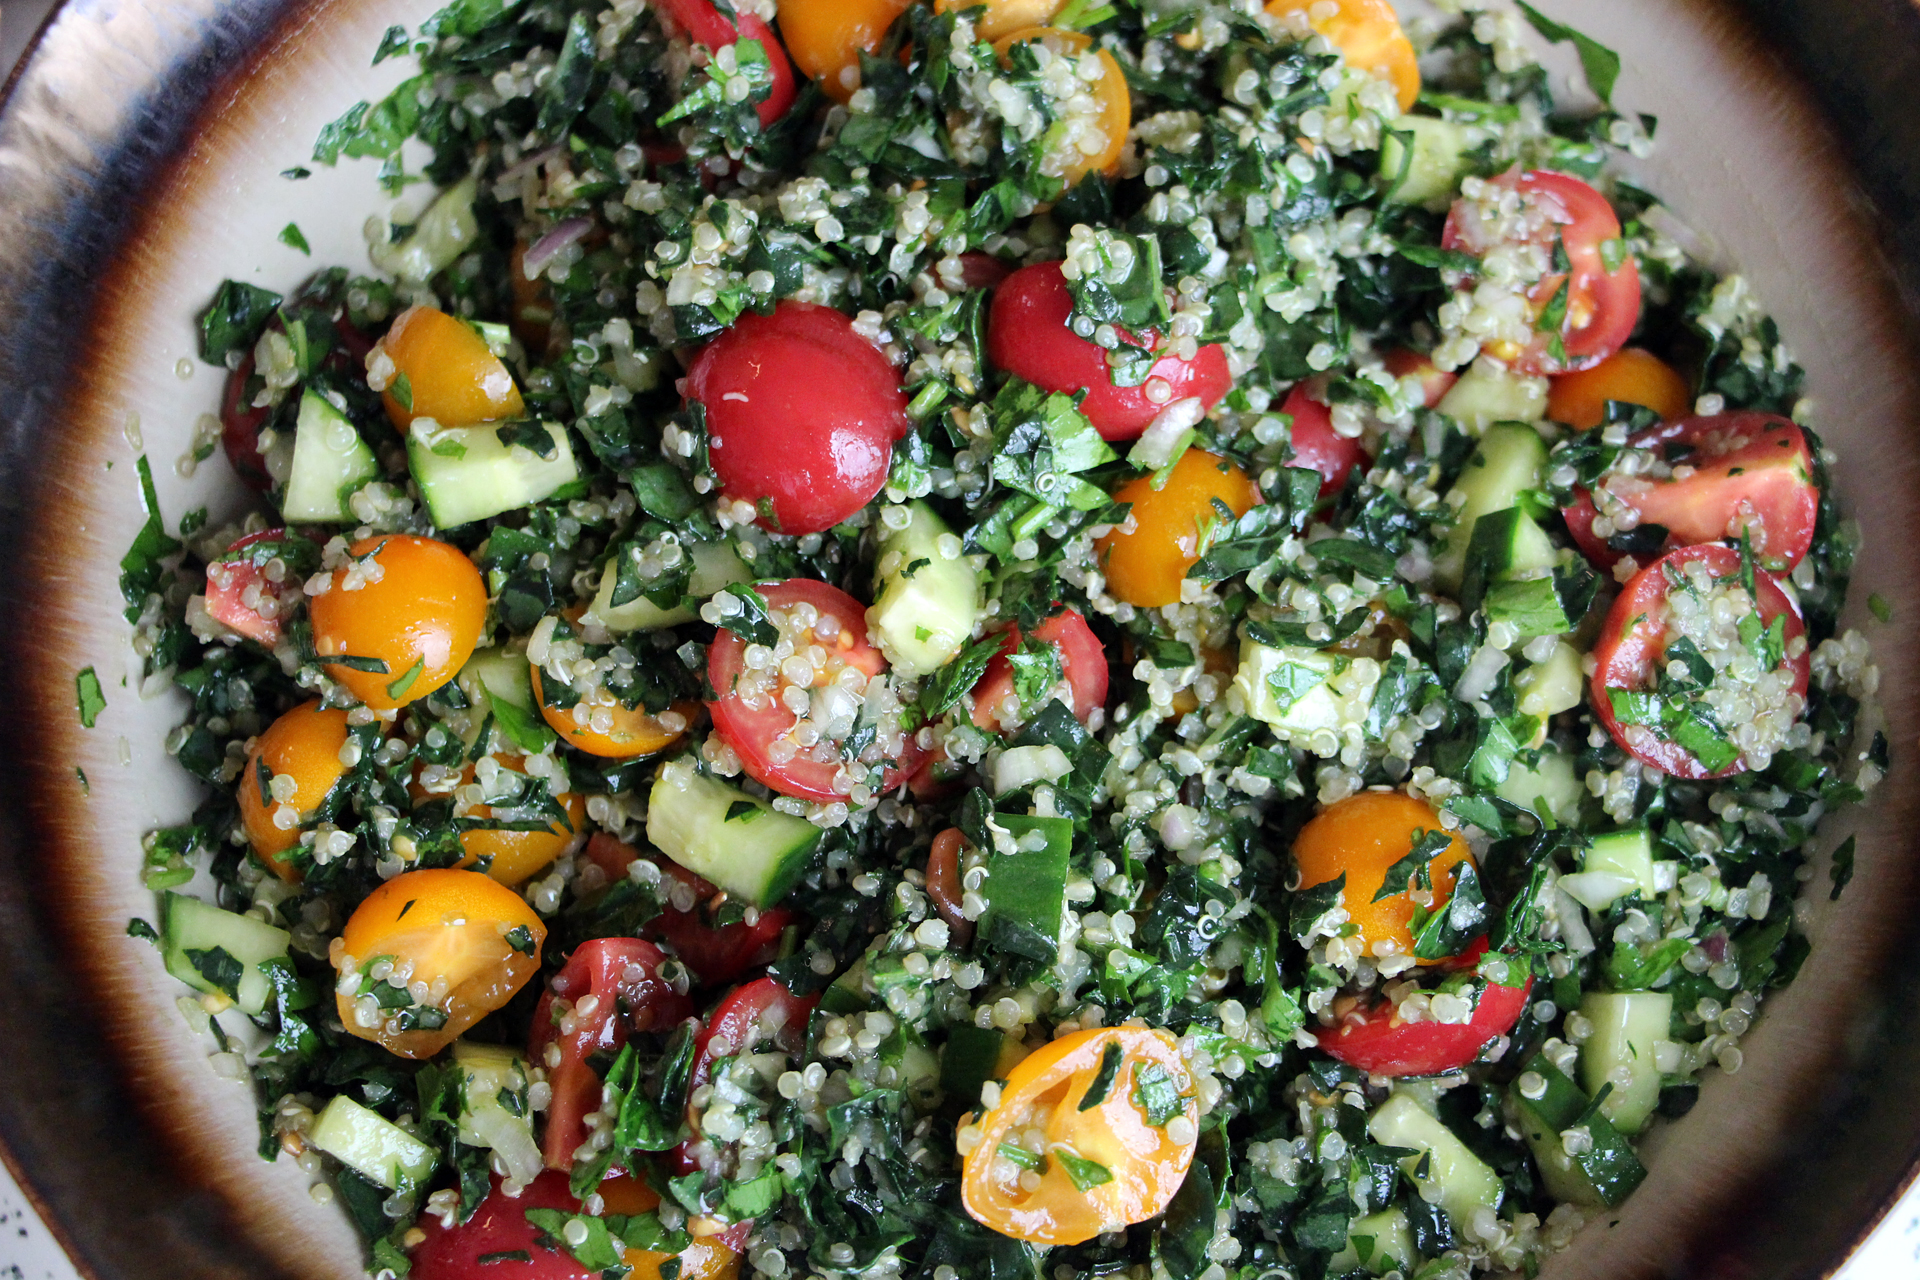 Mediterranean-Style Kale and Quinoa Tabouli with Cherry Tomatoes and Lemon